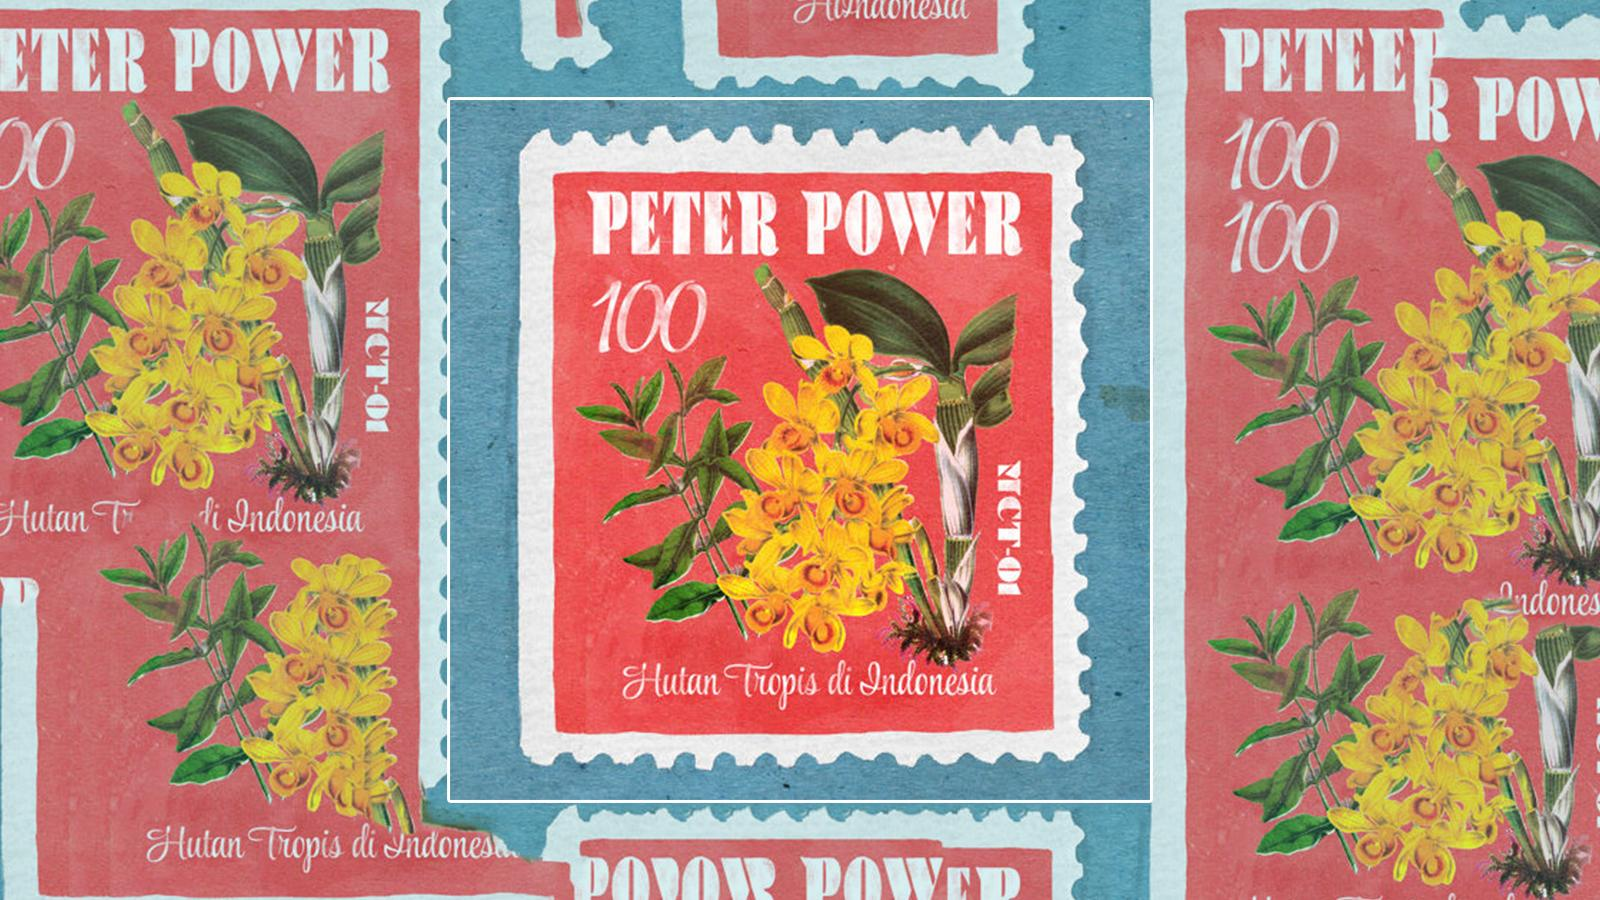 Mix der Woche: Peter Power